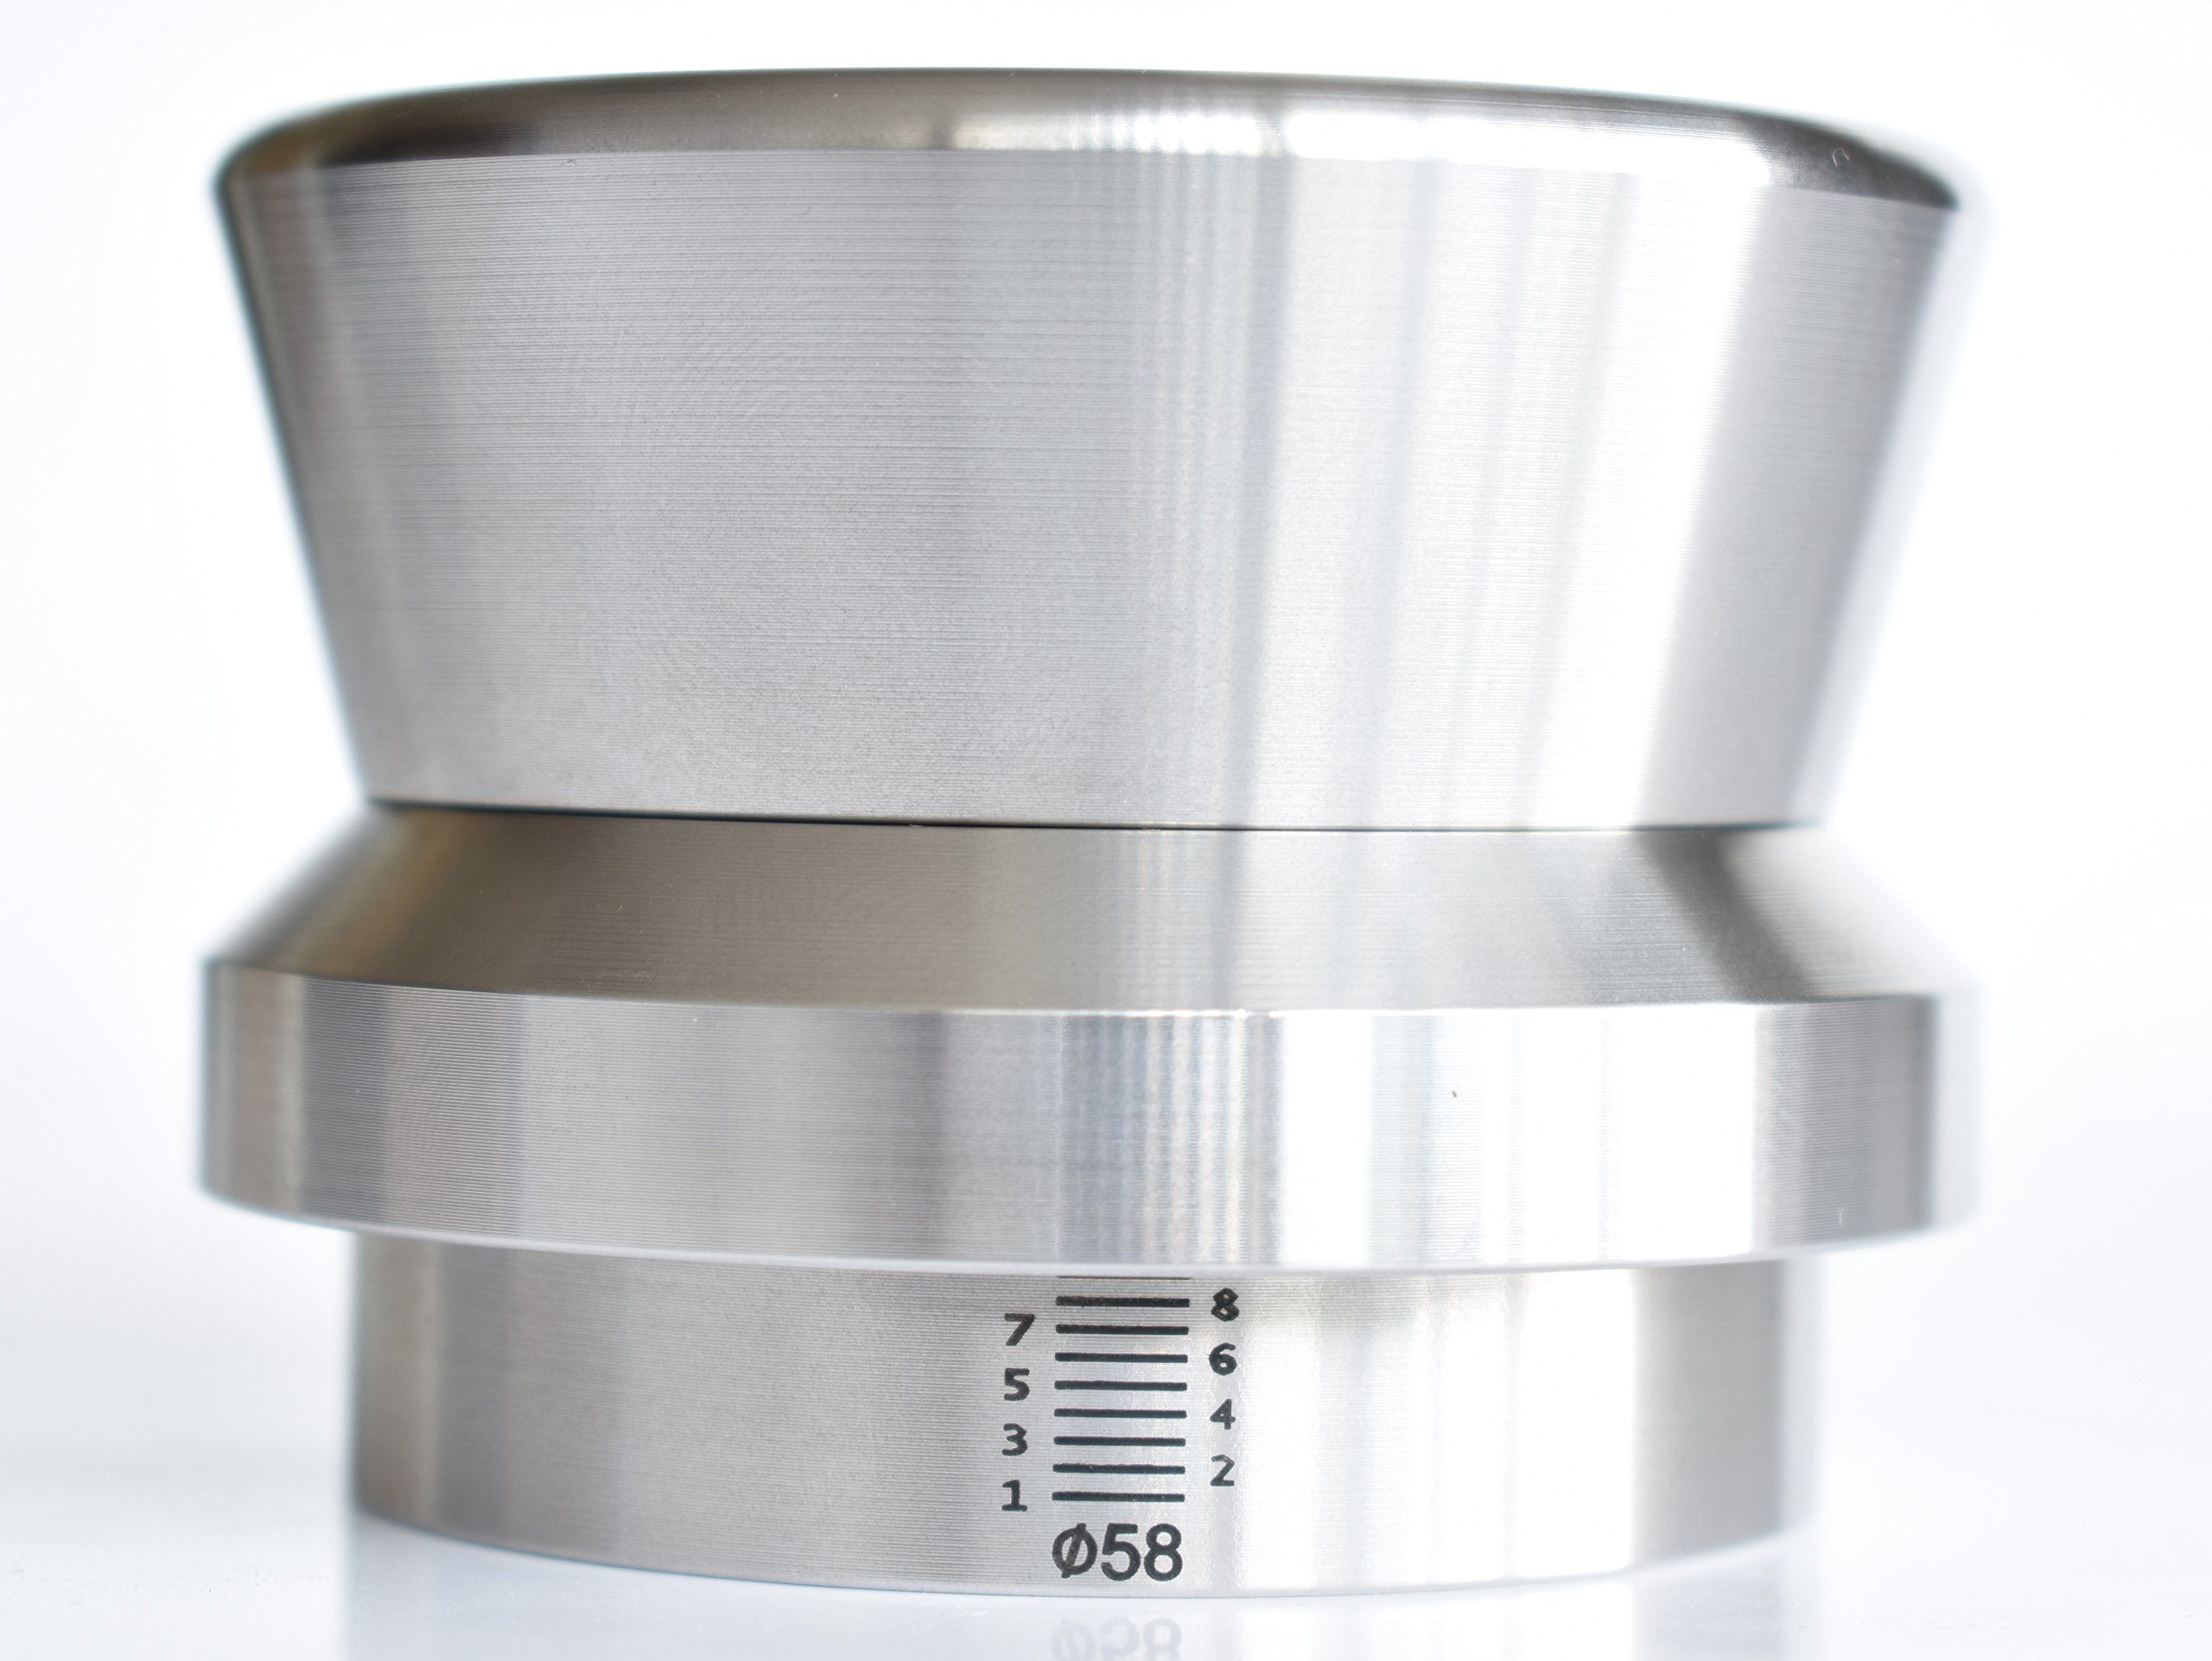 Espresso Level Tamper Coffee Palm Tamper in Stainless steel, heavy 58mm weight is 1.2 kilogram(2.71 LBS) by [JOEFREX]